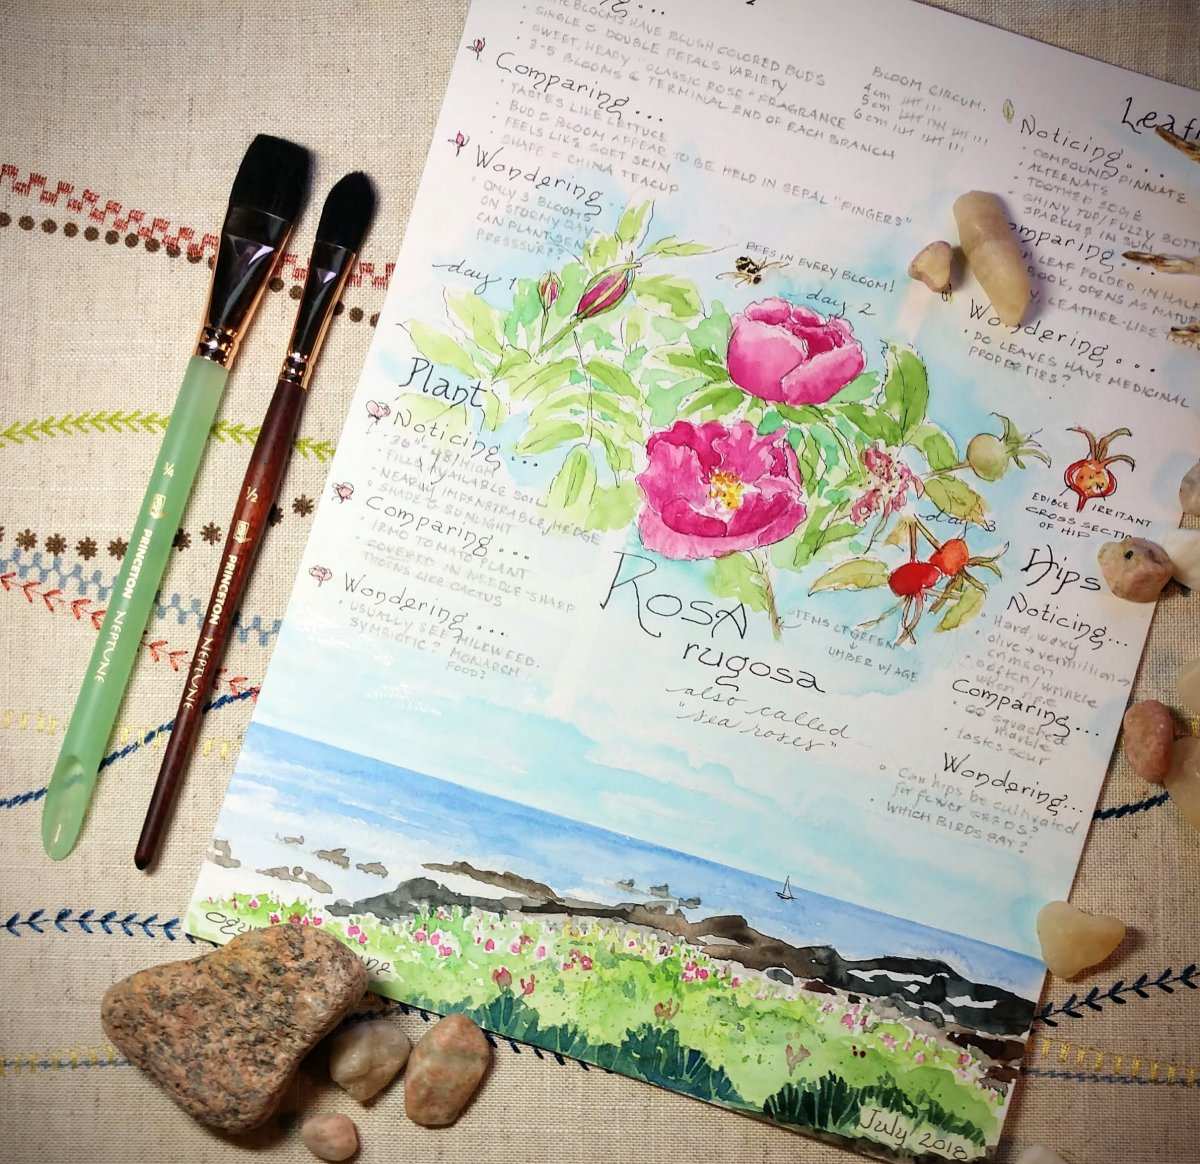 Princeton Neptune brushes for journaling and sketching